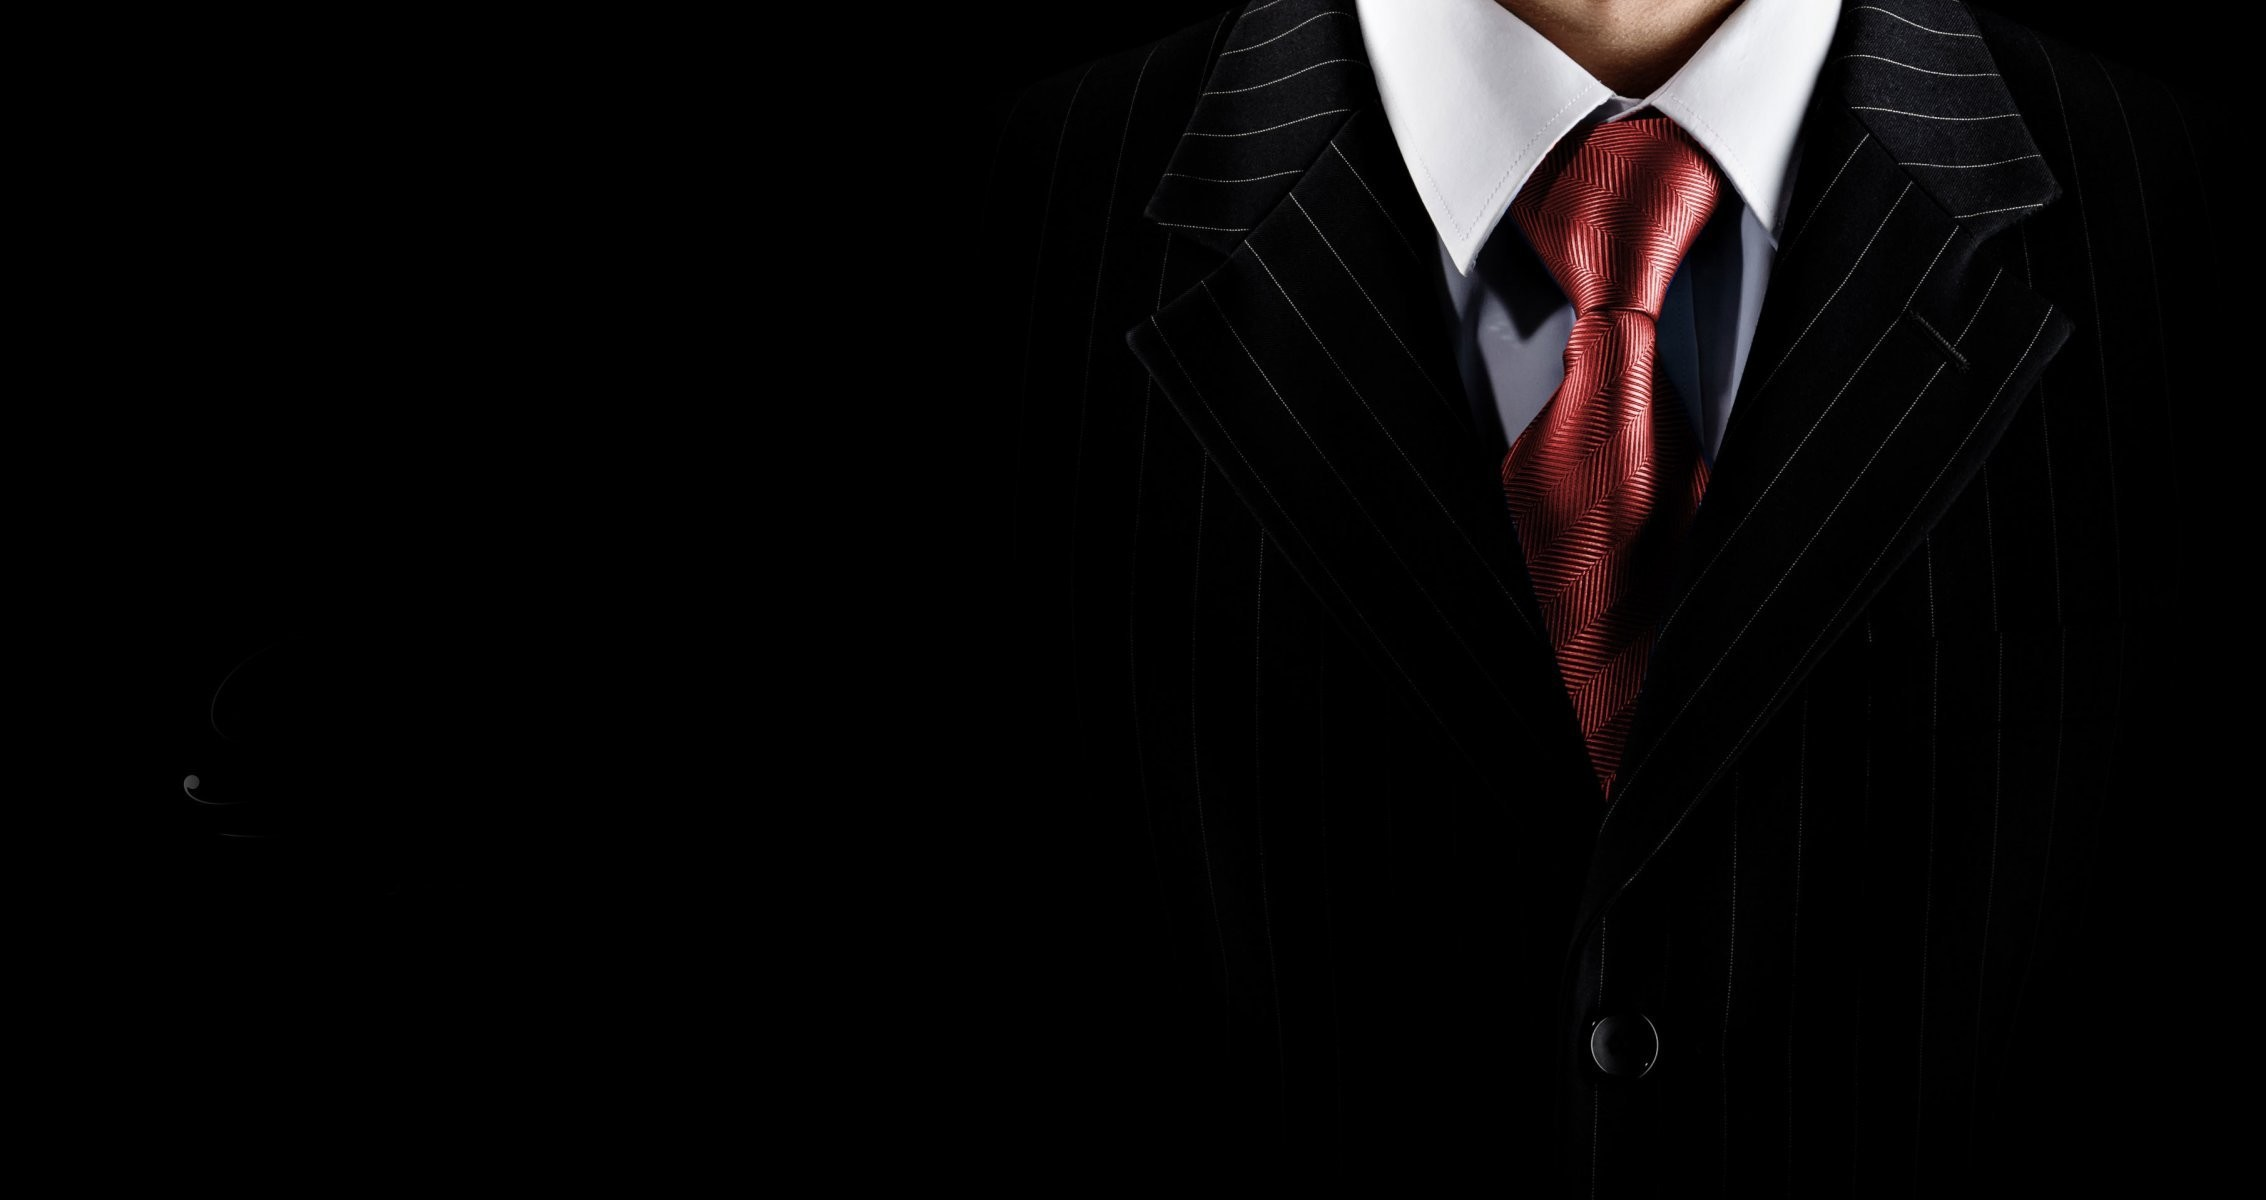 Suit And Tie Wallpapers 55 Pictures